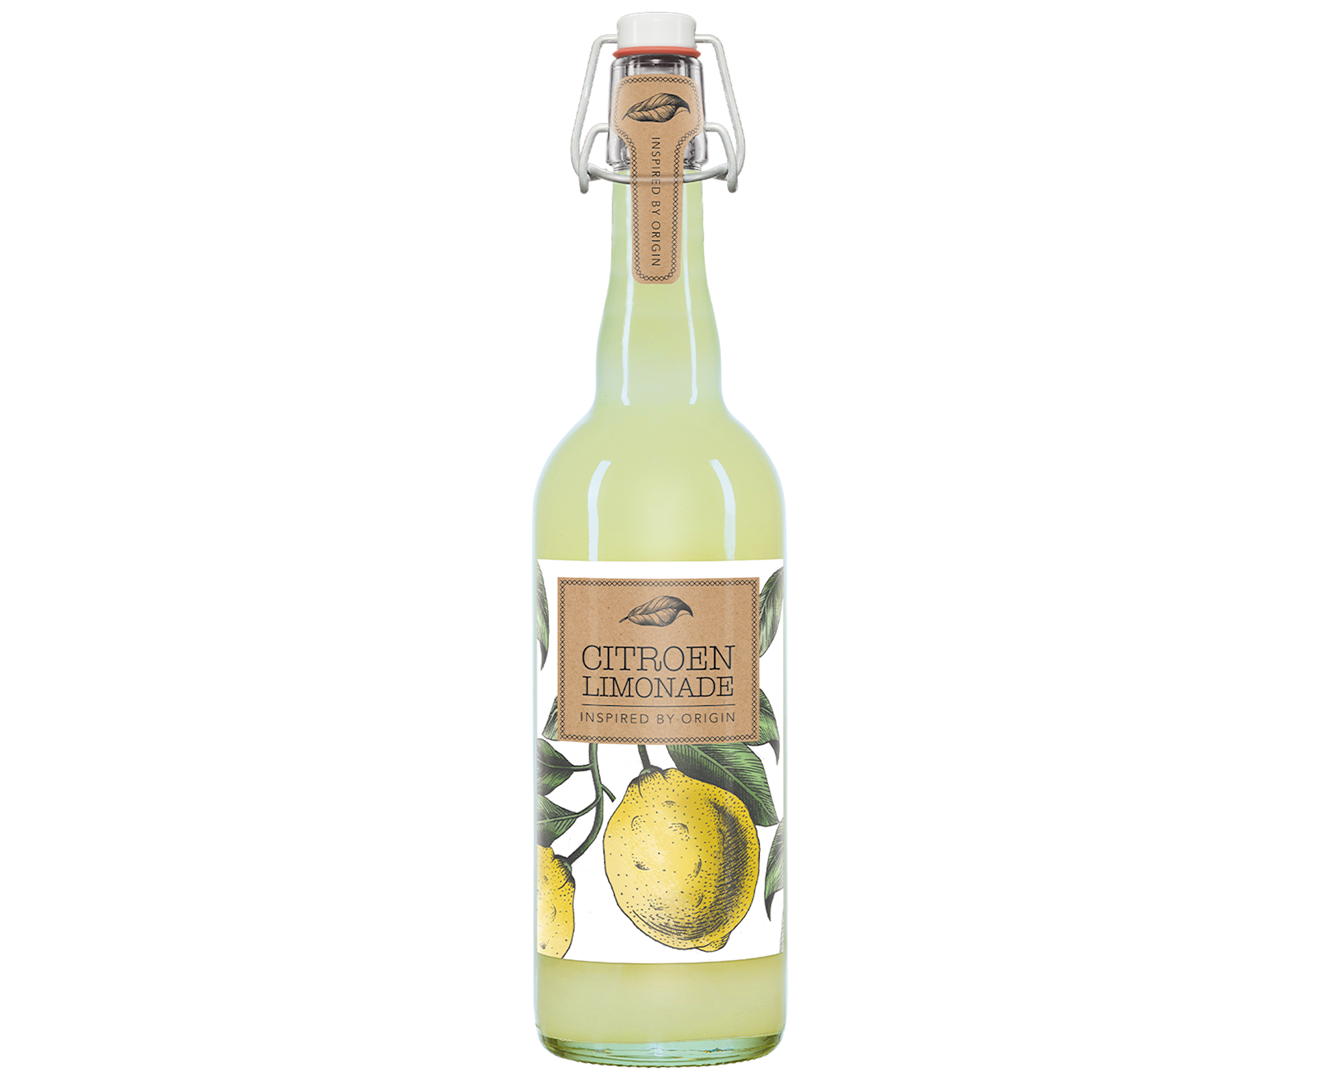 Productafbeelding Limonade Inspired by origin 750ml fles